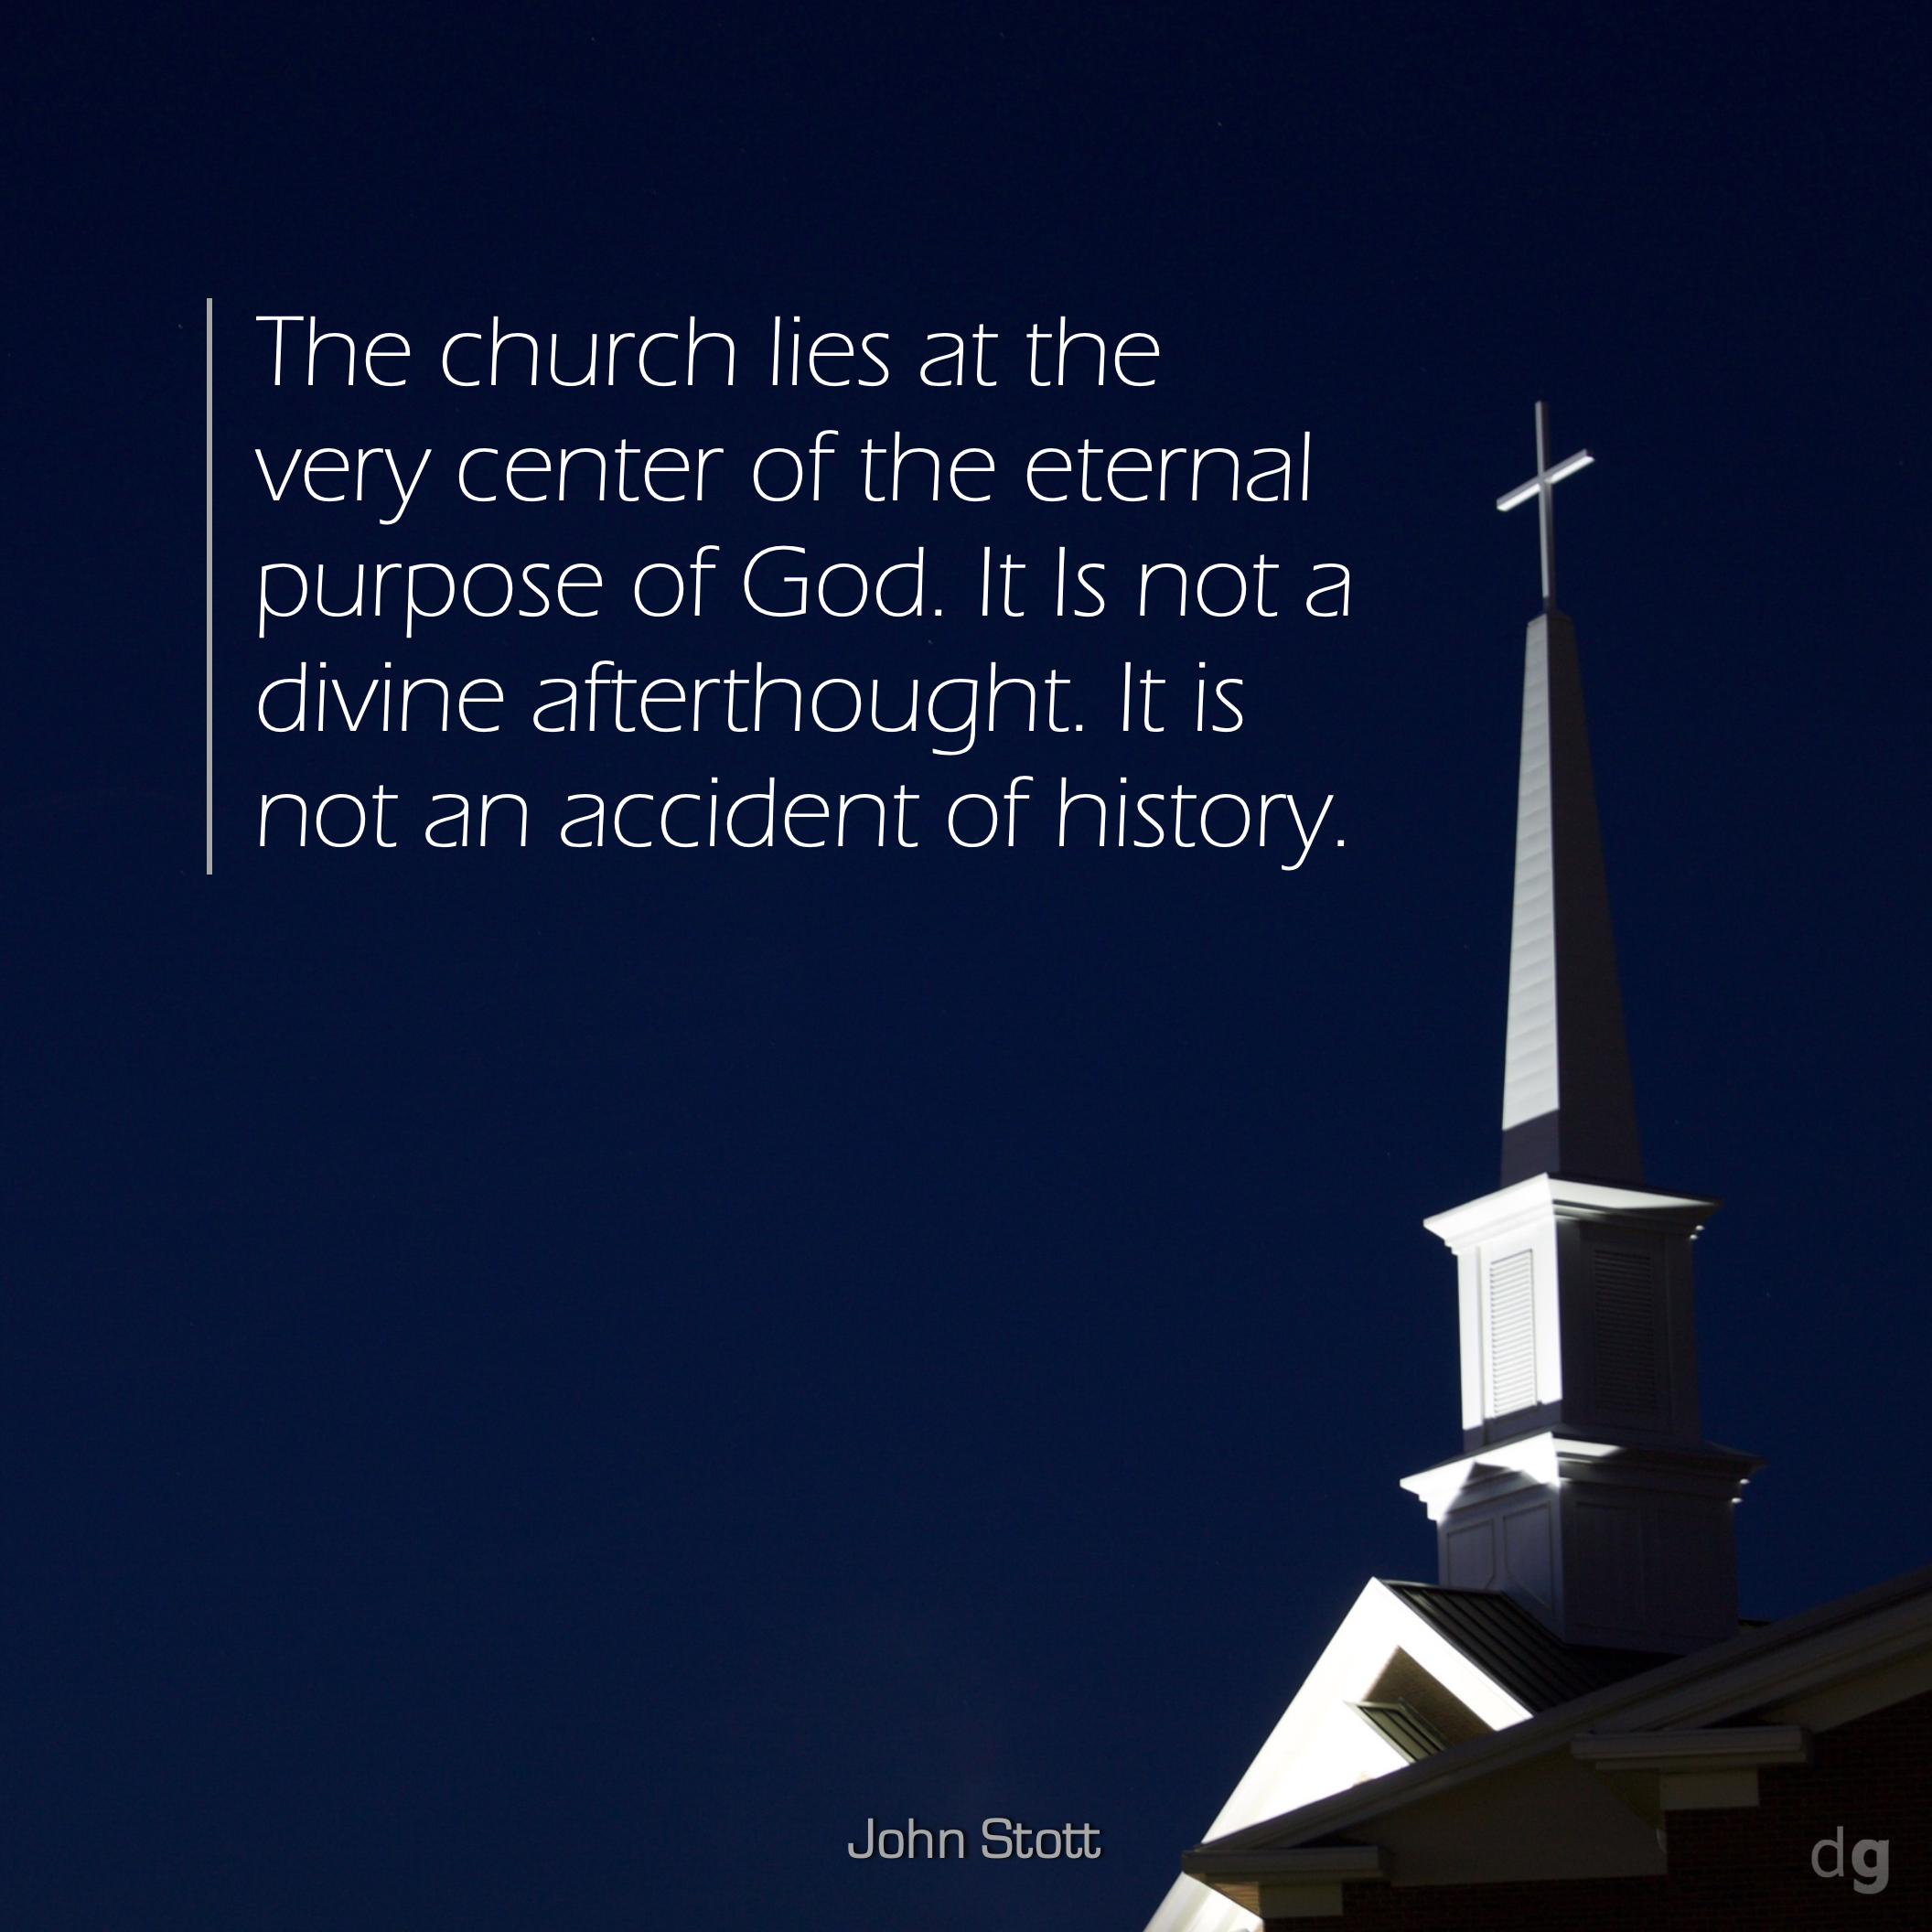 63 - The Church Is Not An Accident of History (Stott).png